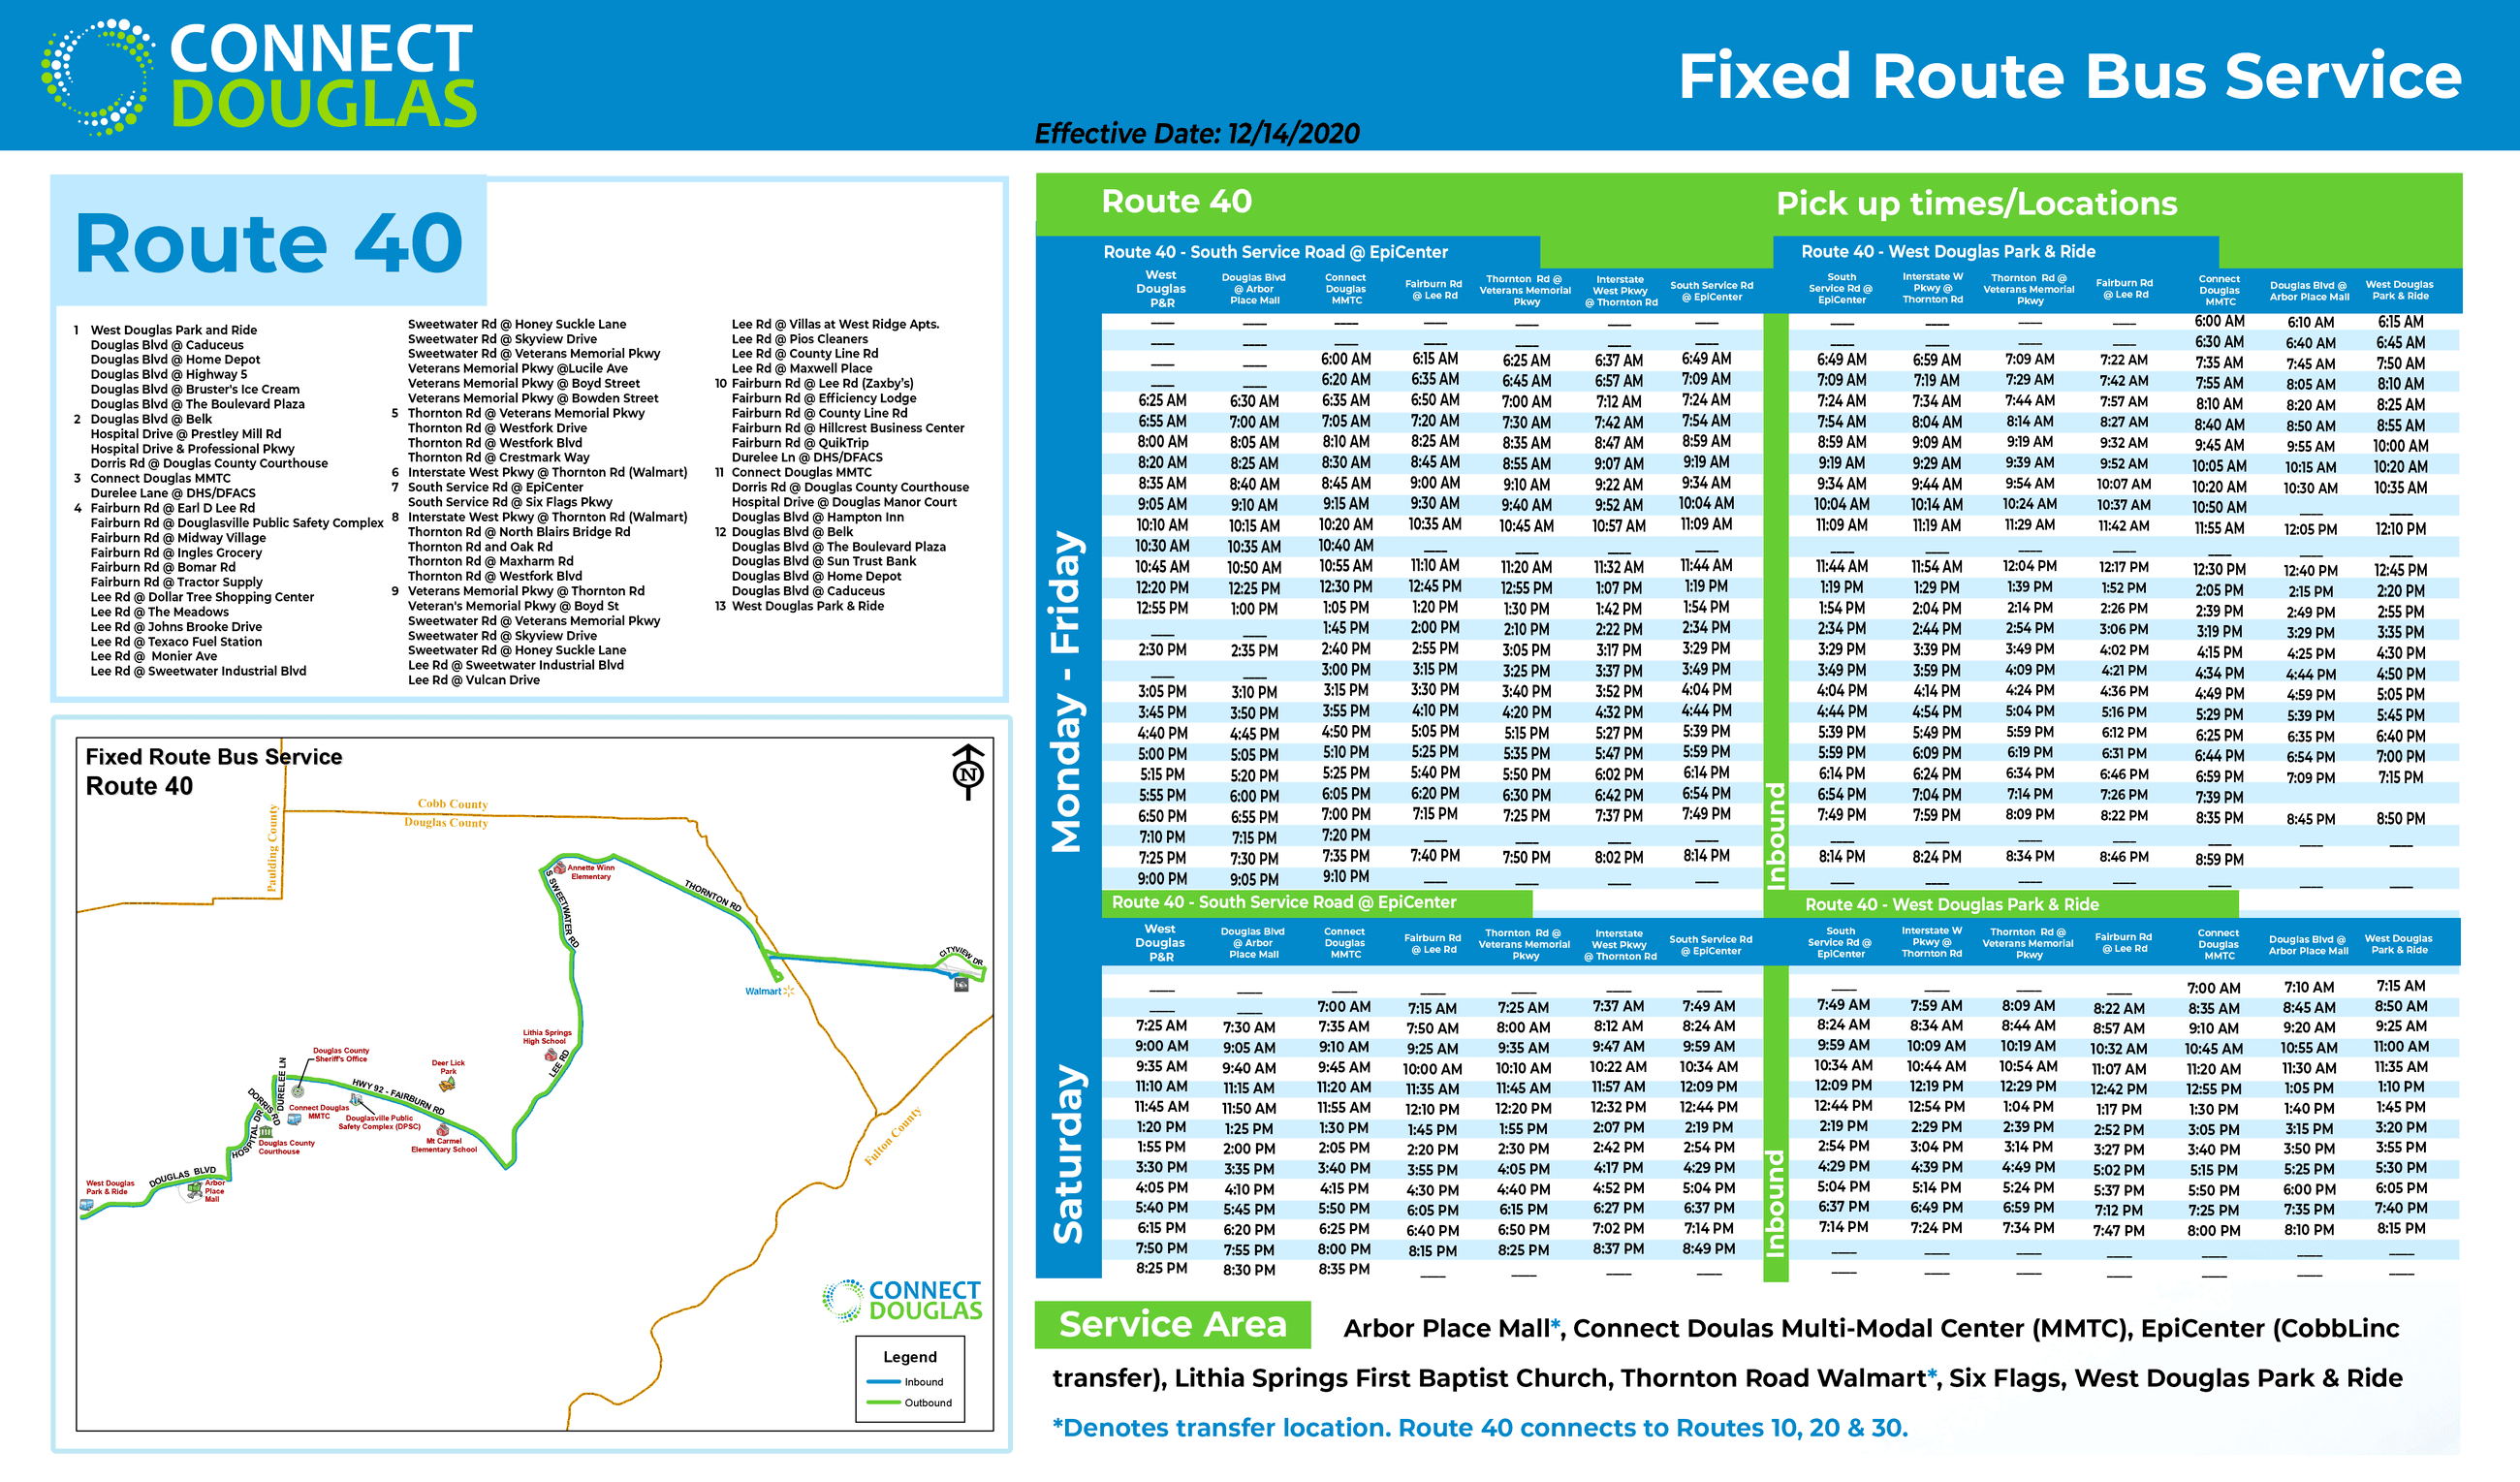 Connect Douglas-Bus Route 40 (Effective 12/14/2020)